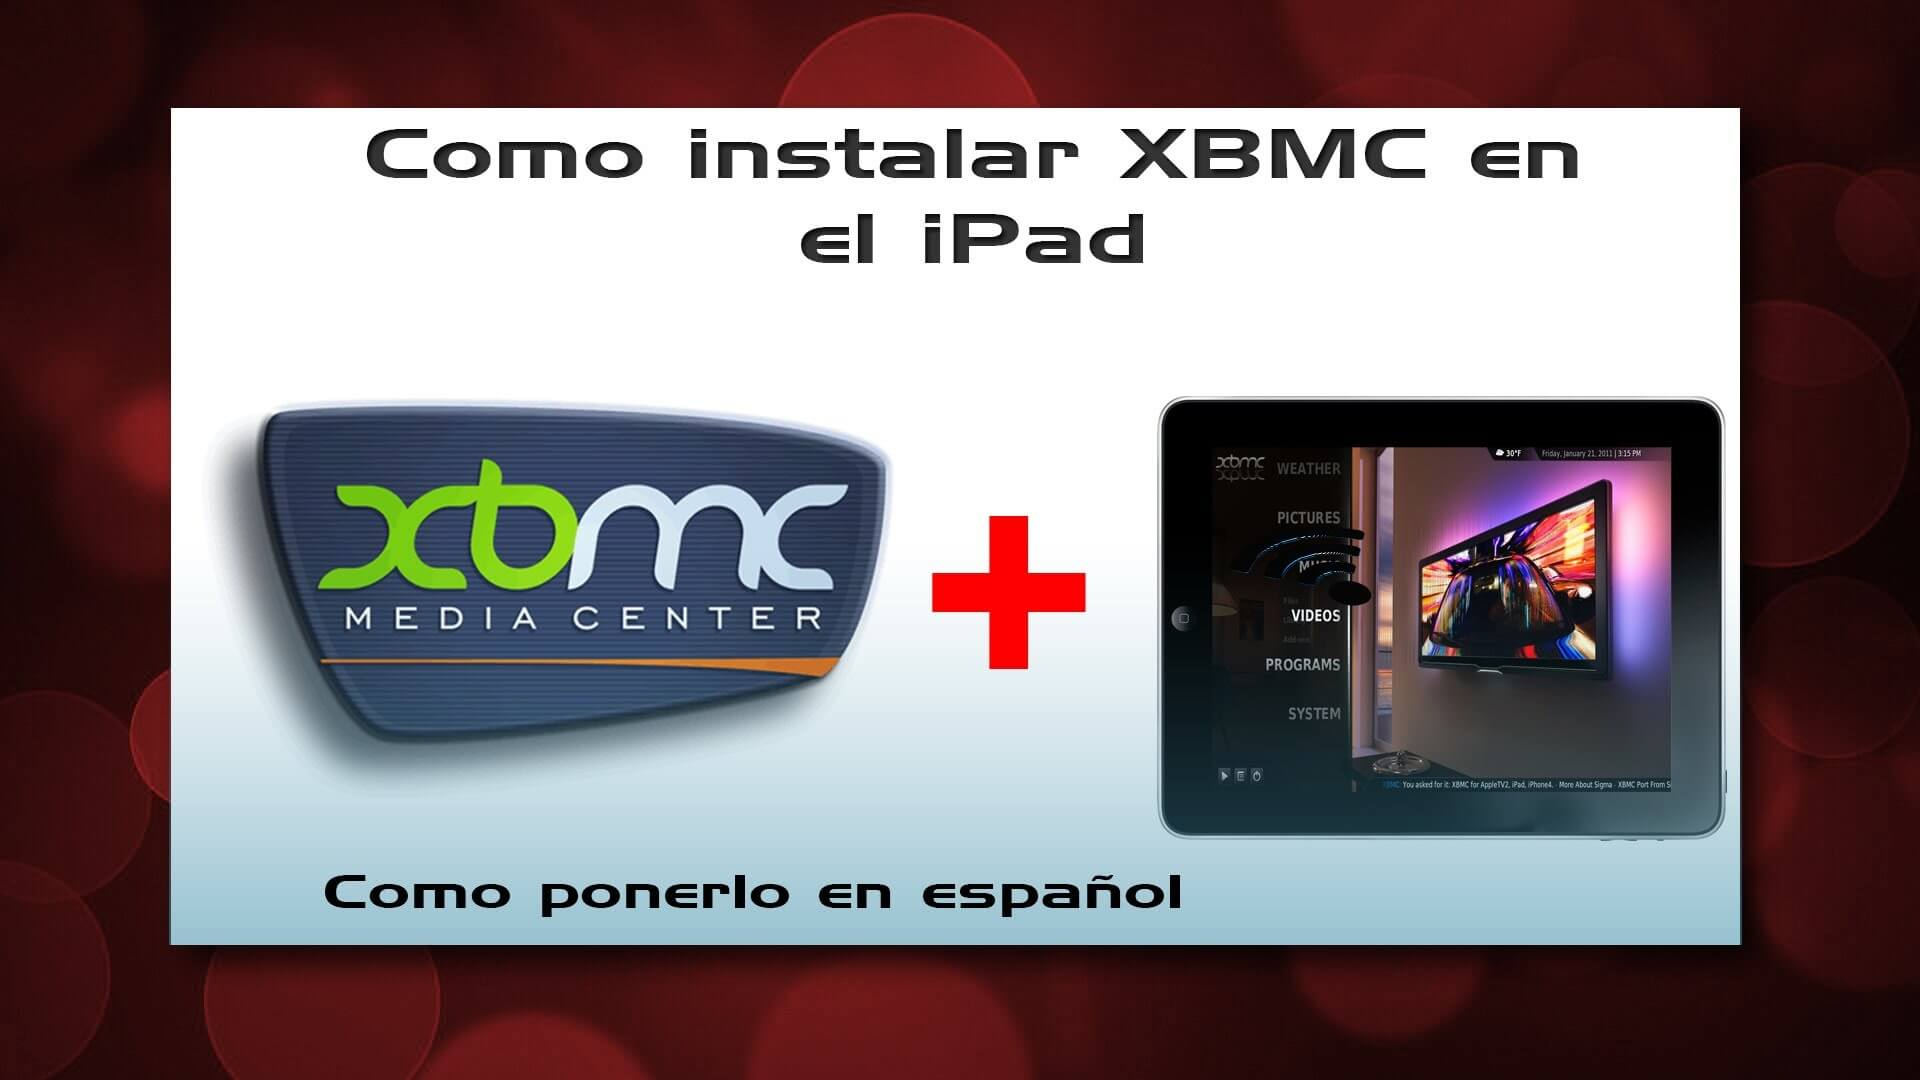 Como instalar XBMC en el iPhone/iPod/iPad